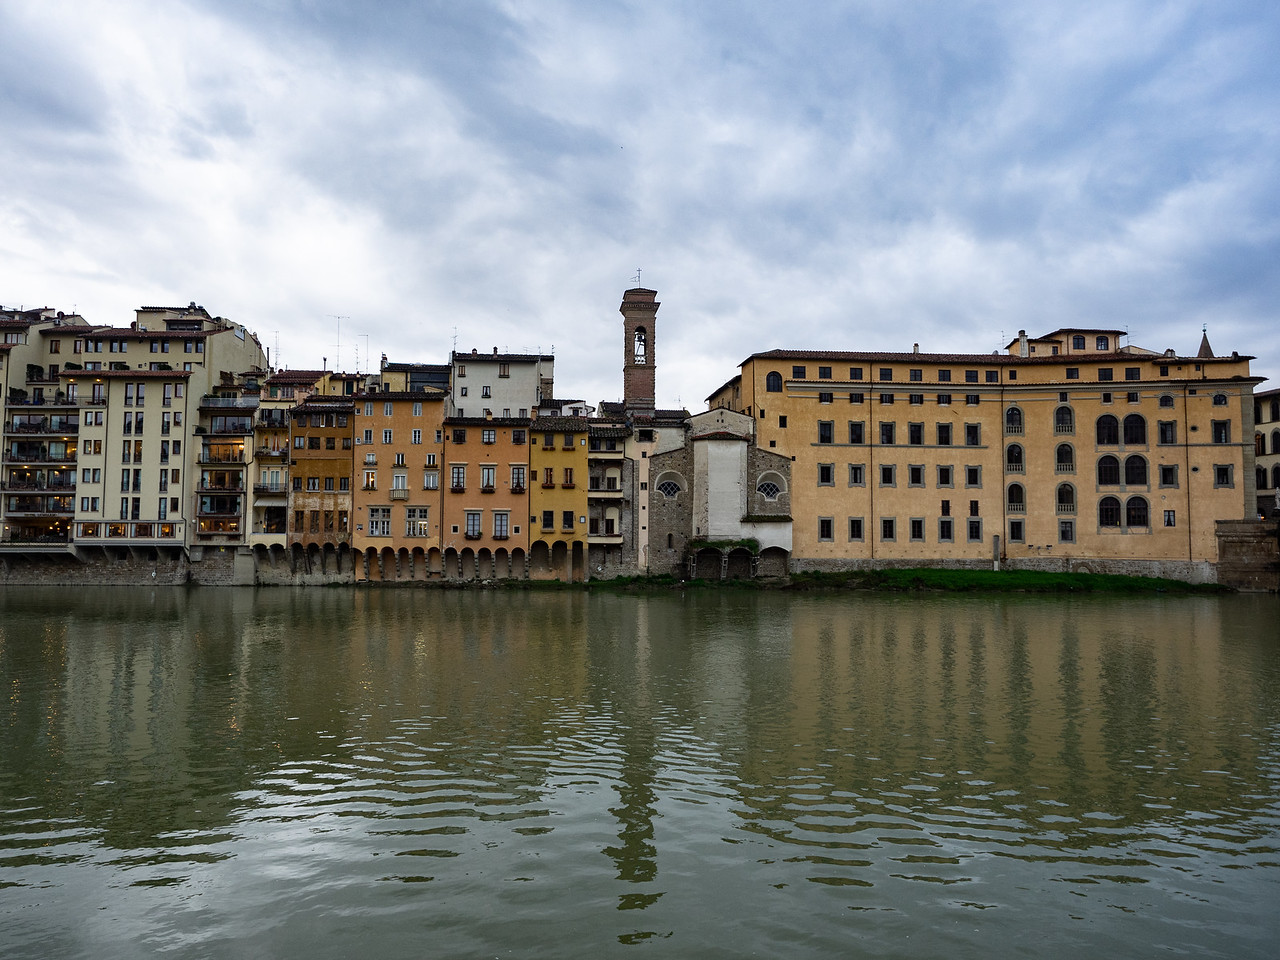 View across the River Arno.